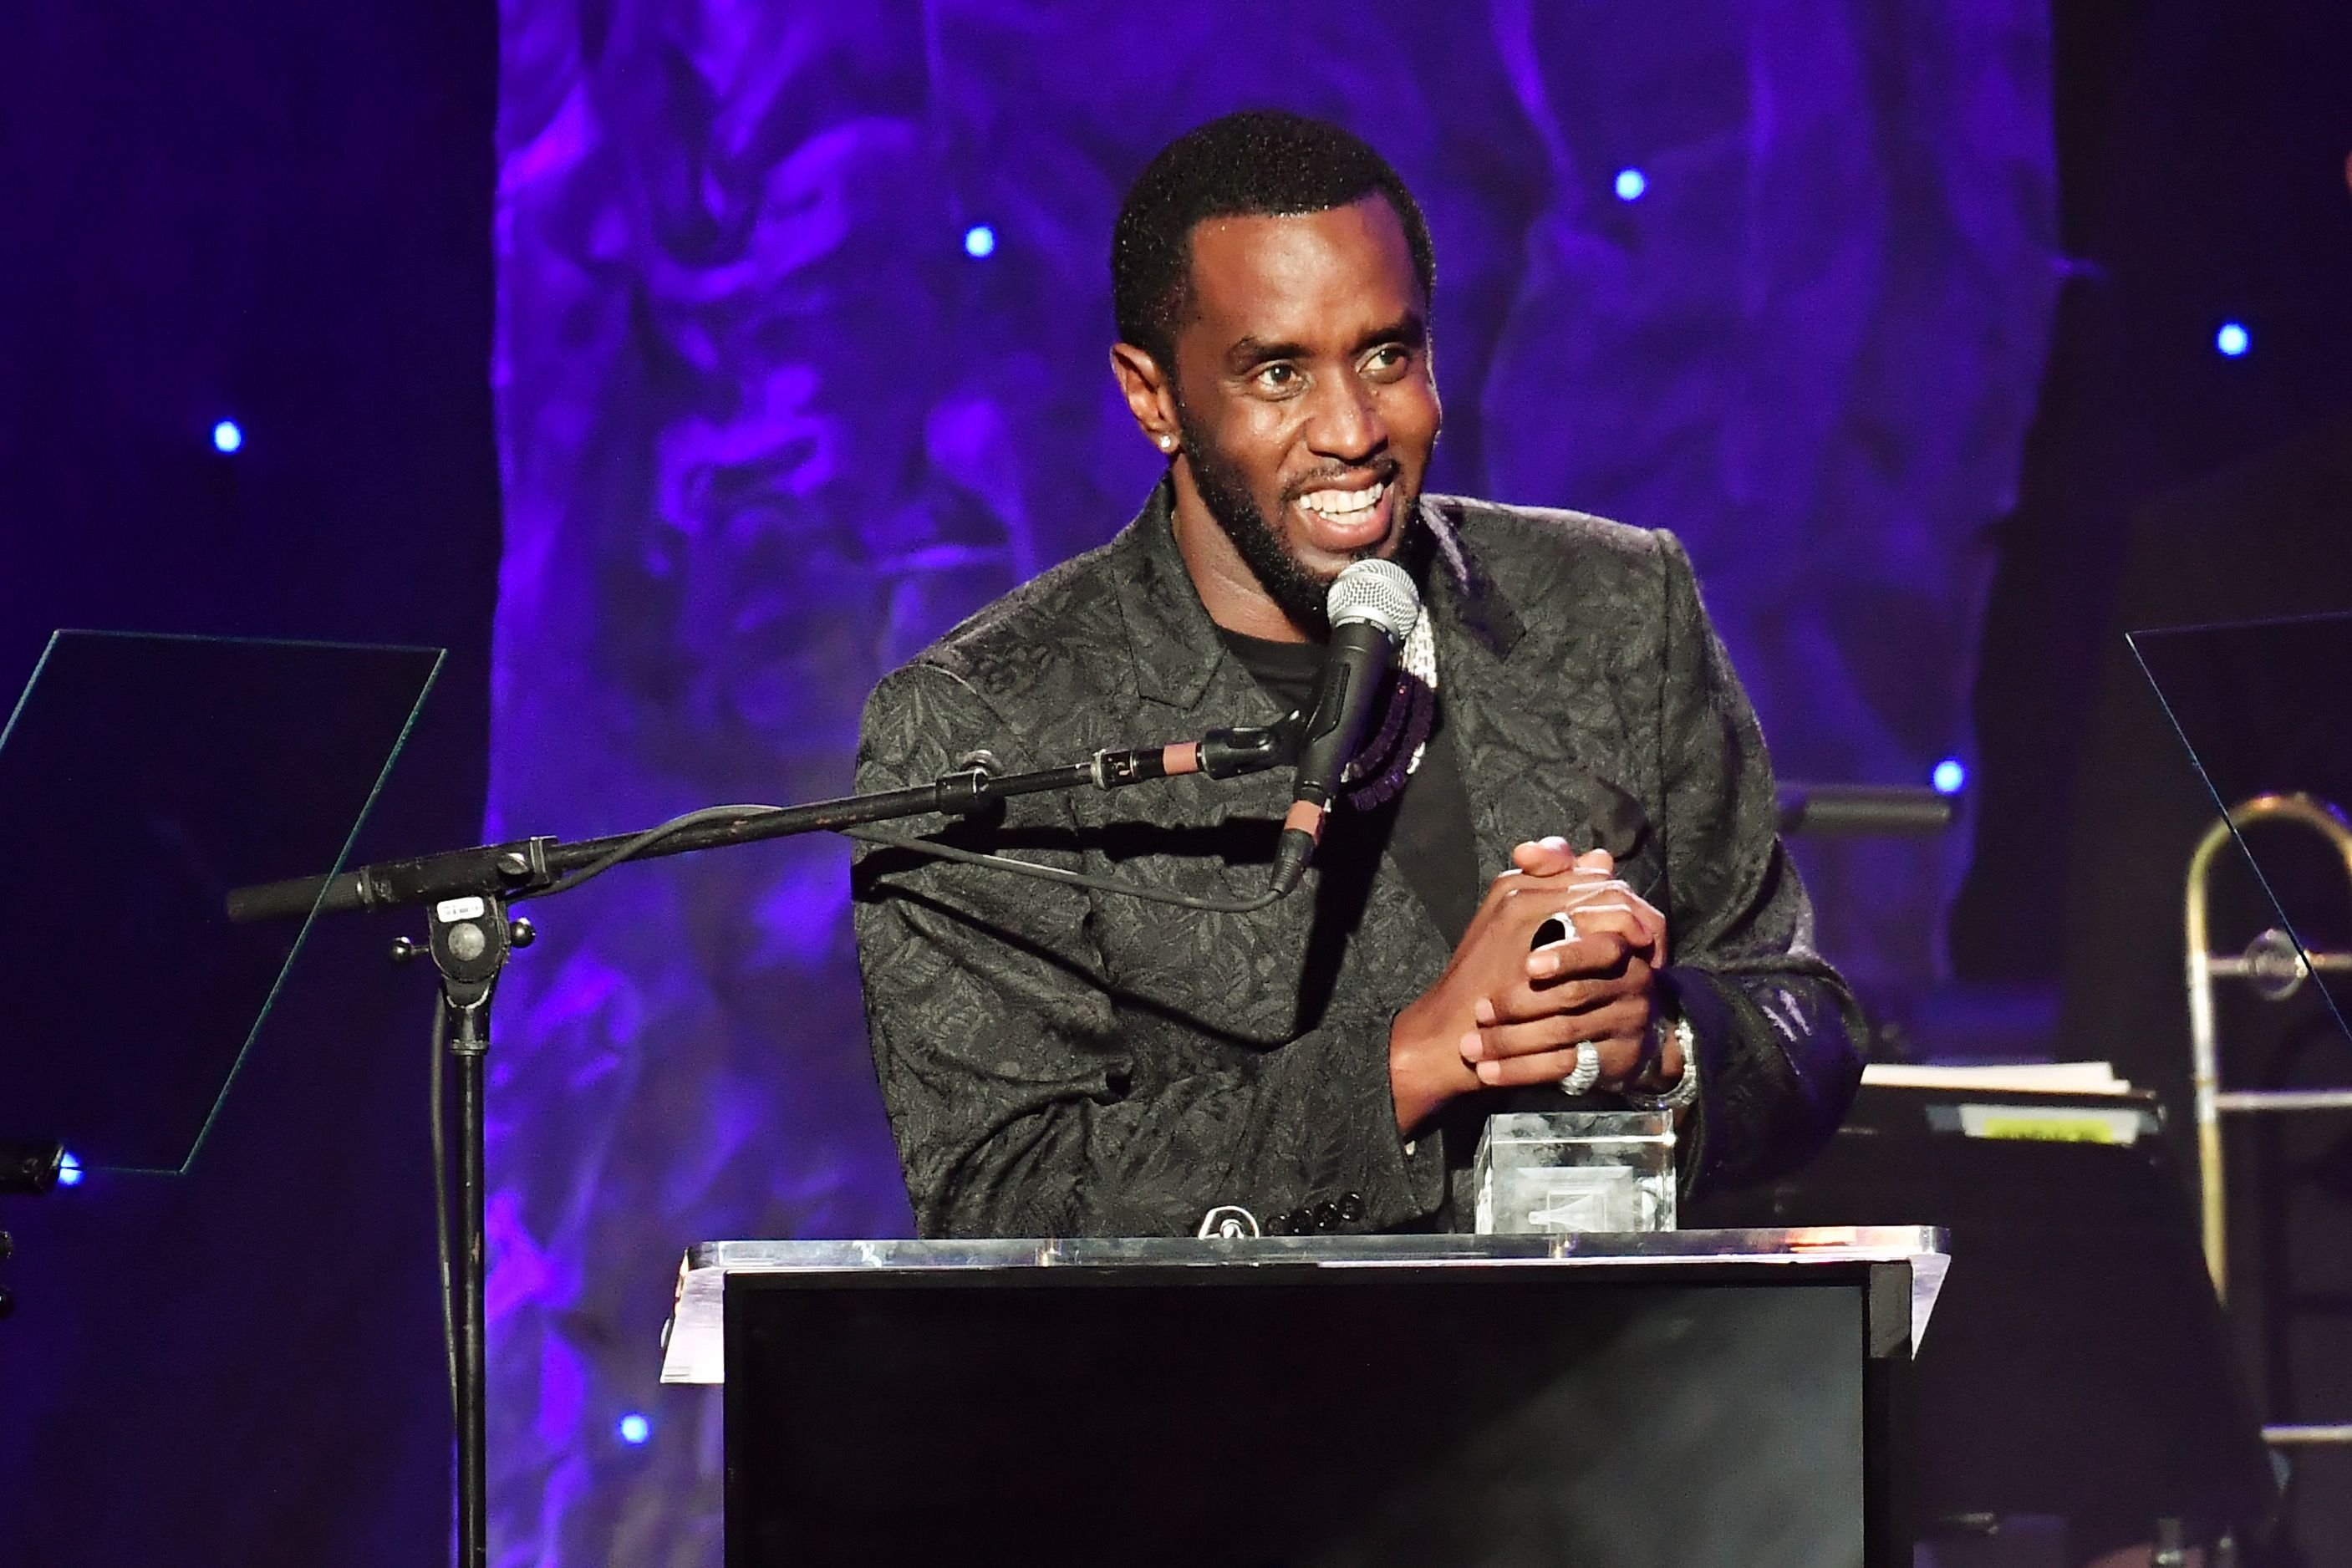 """Sean """"Diddy"""" Combs receiving the President's Merit Award at the Grammy Gala and Grammy Salute to Industry Icons on January 25, 2020 in Beverly Hills, California. 